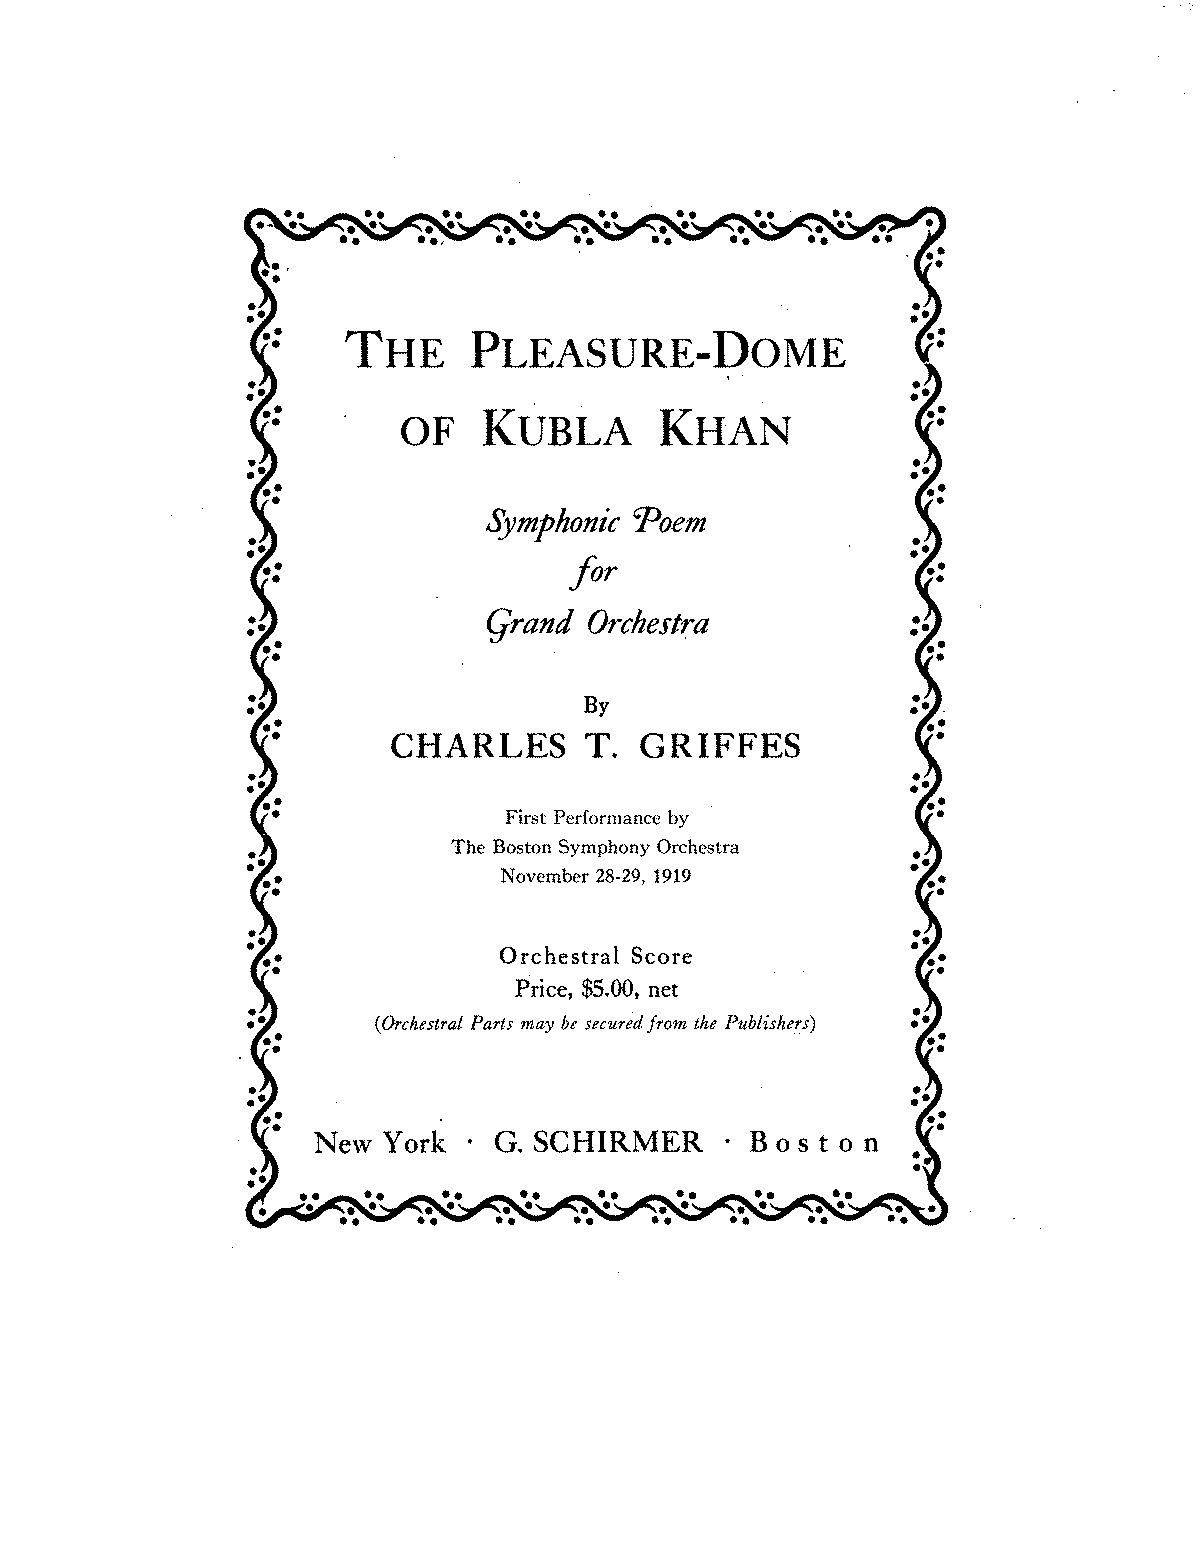 PMLP46399-Griffes - The Pleasure-Dome of Kubla Khan.pdf